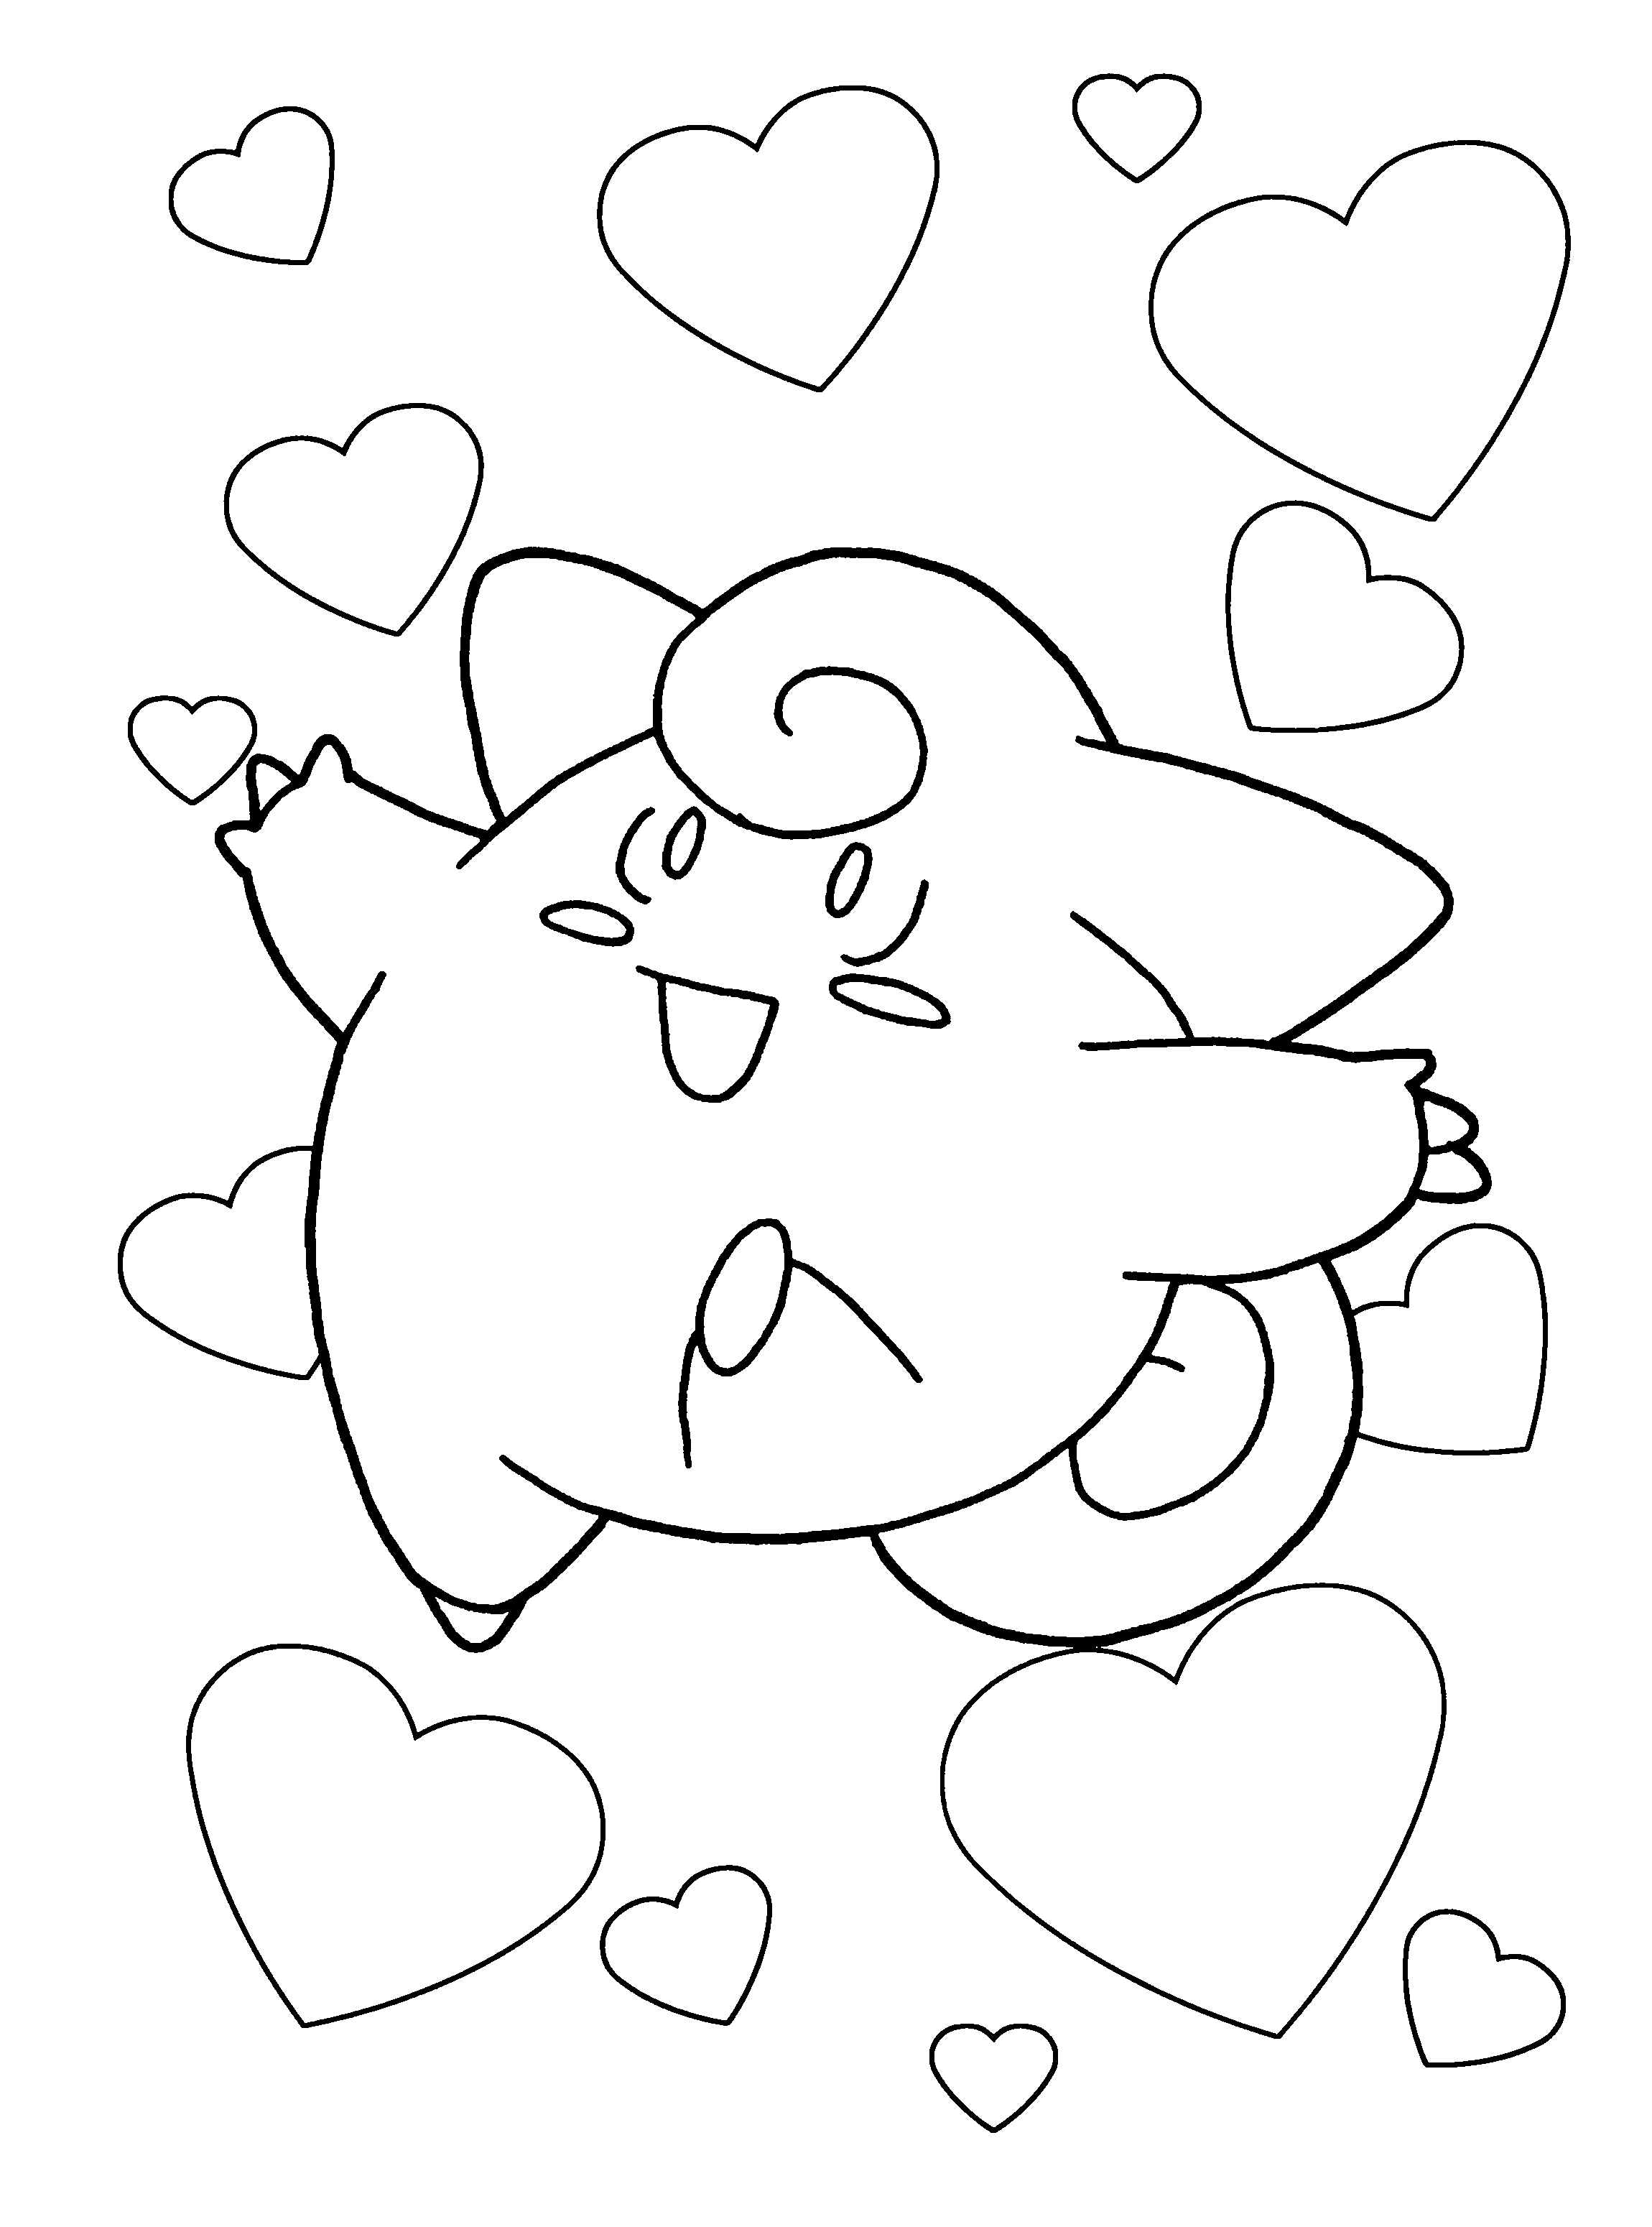 coloring pages for pokemon pokemon coloring pages join your favorite pokemon on an pokemon coloring pages for